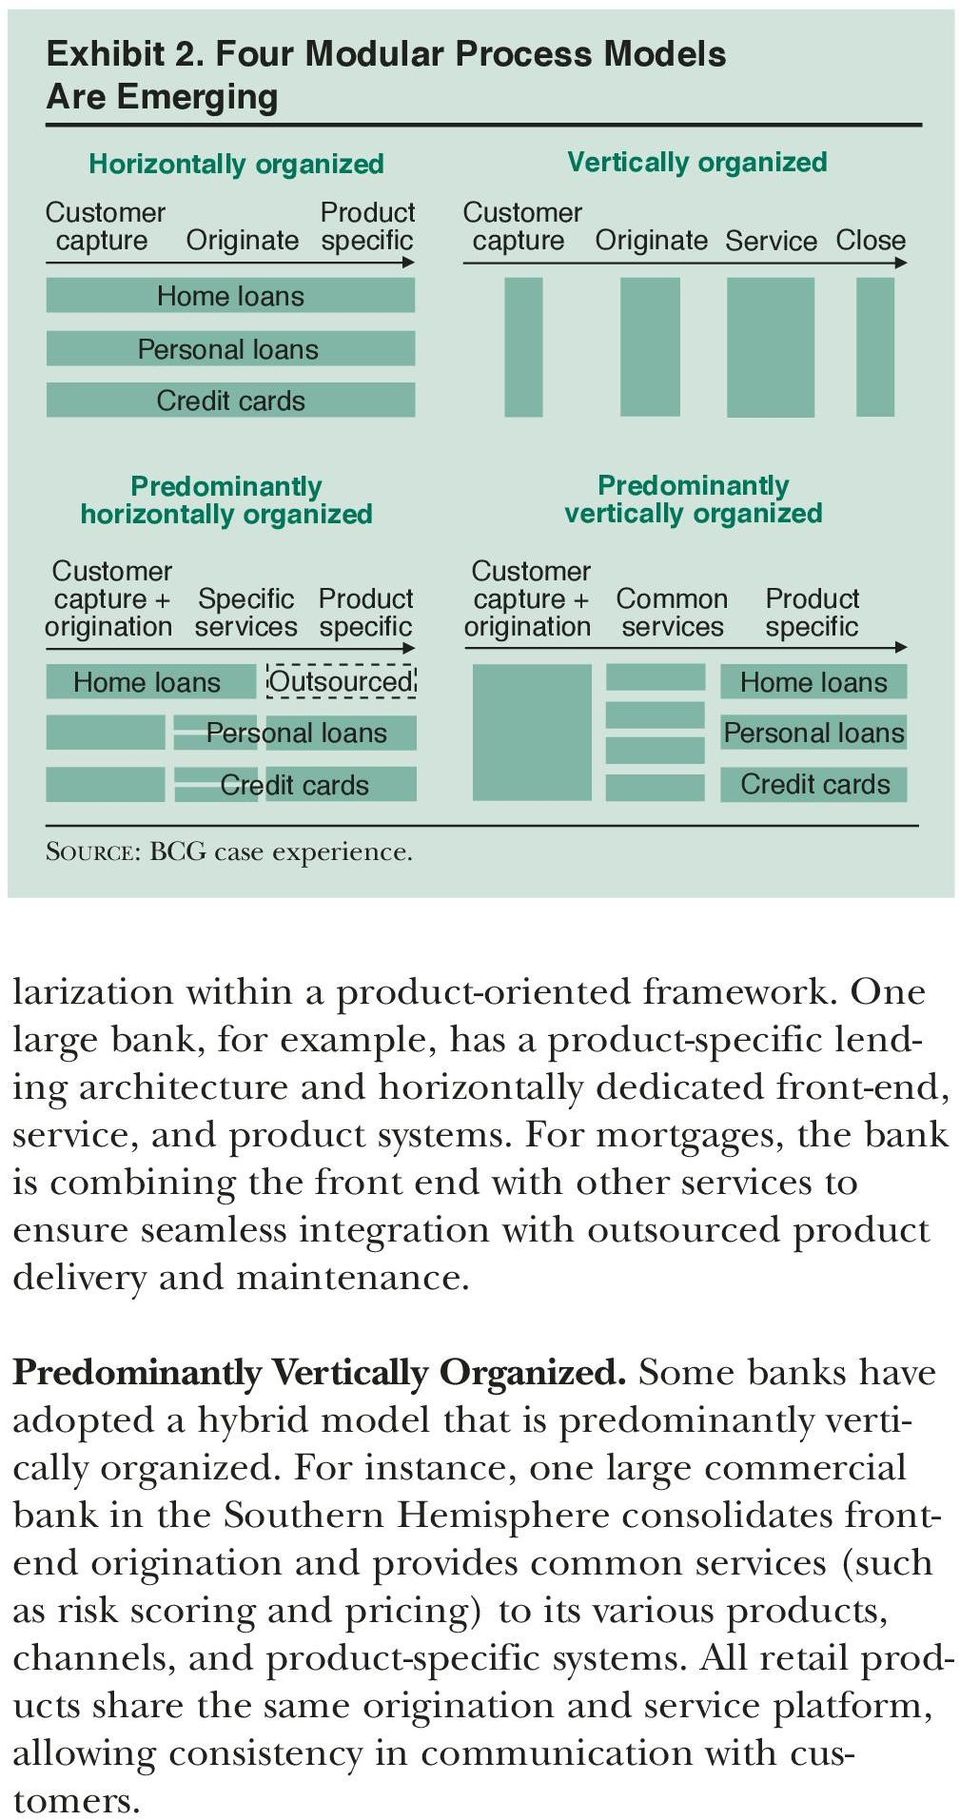 horizontally organized capture + origination Home loans Specific services specific Outsourced Personal loans Credit cards capture + origination Predominantly vertically organized Common services